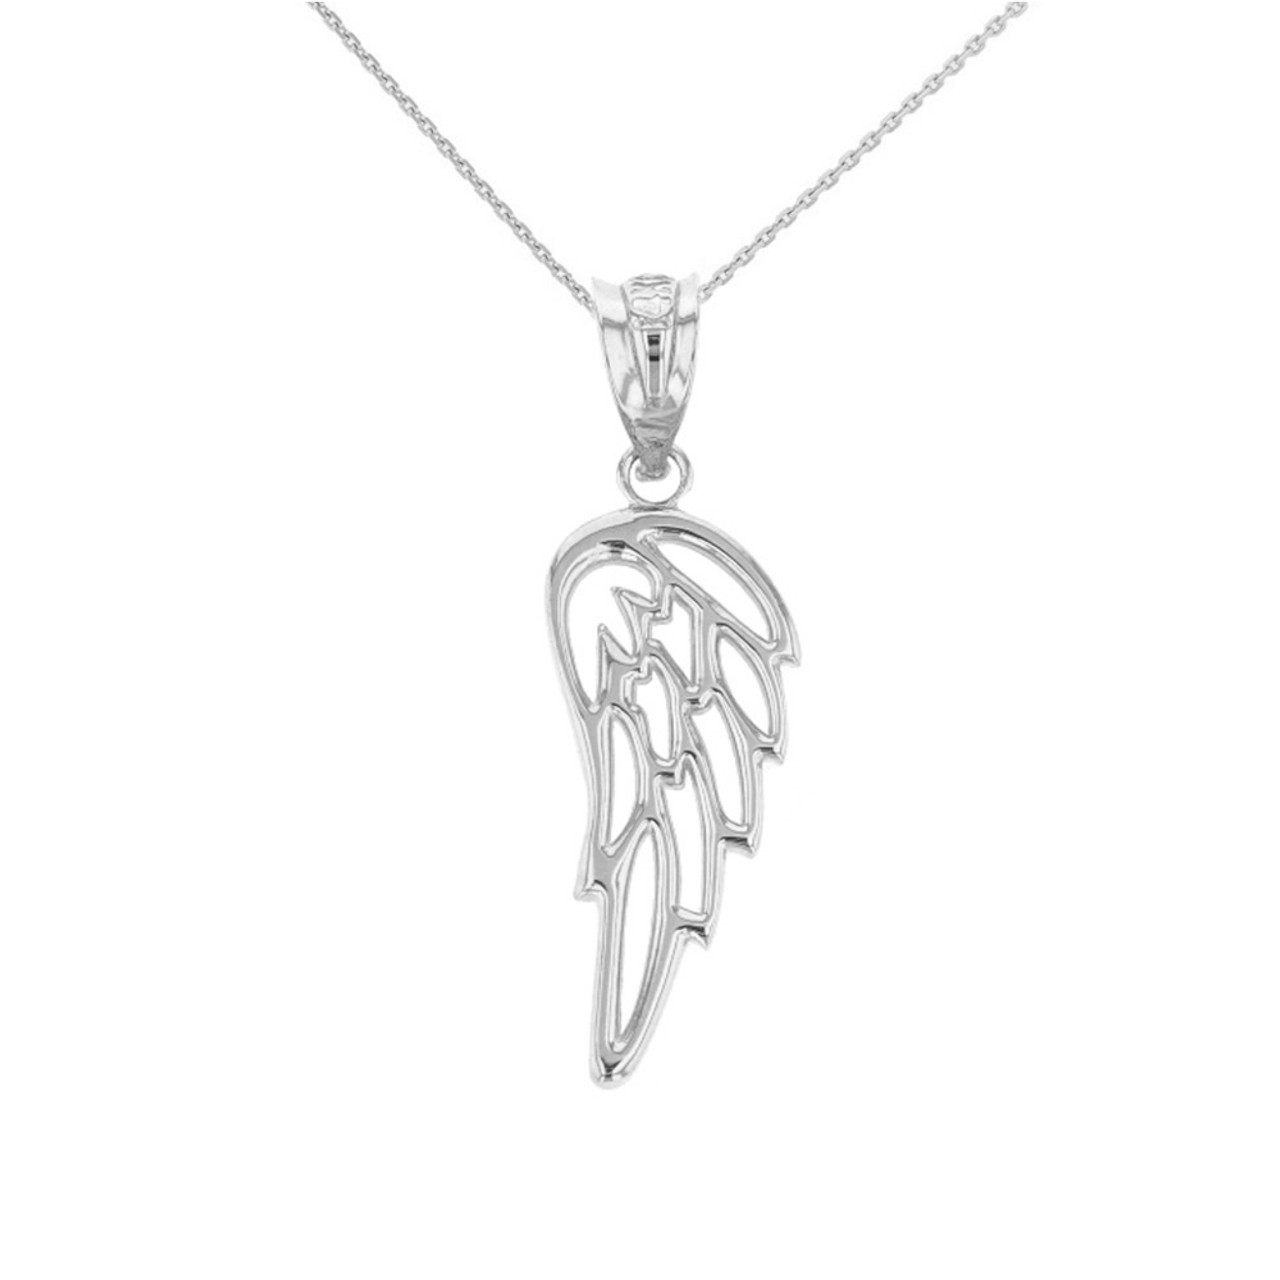 pendant from a made necklace special jewelry wings loved jewellery sterling one silver for angel wing irish products elena gift